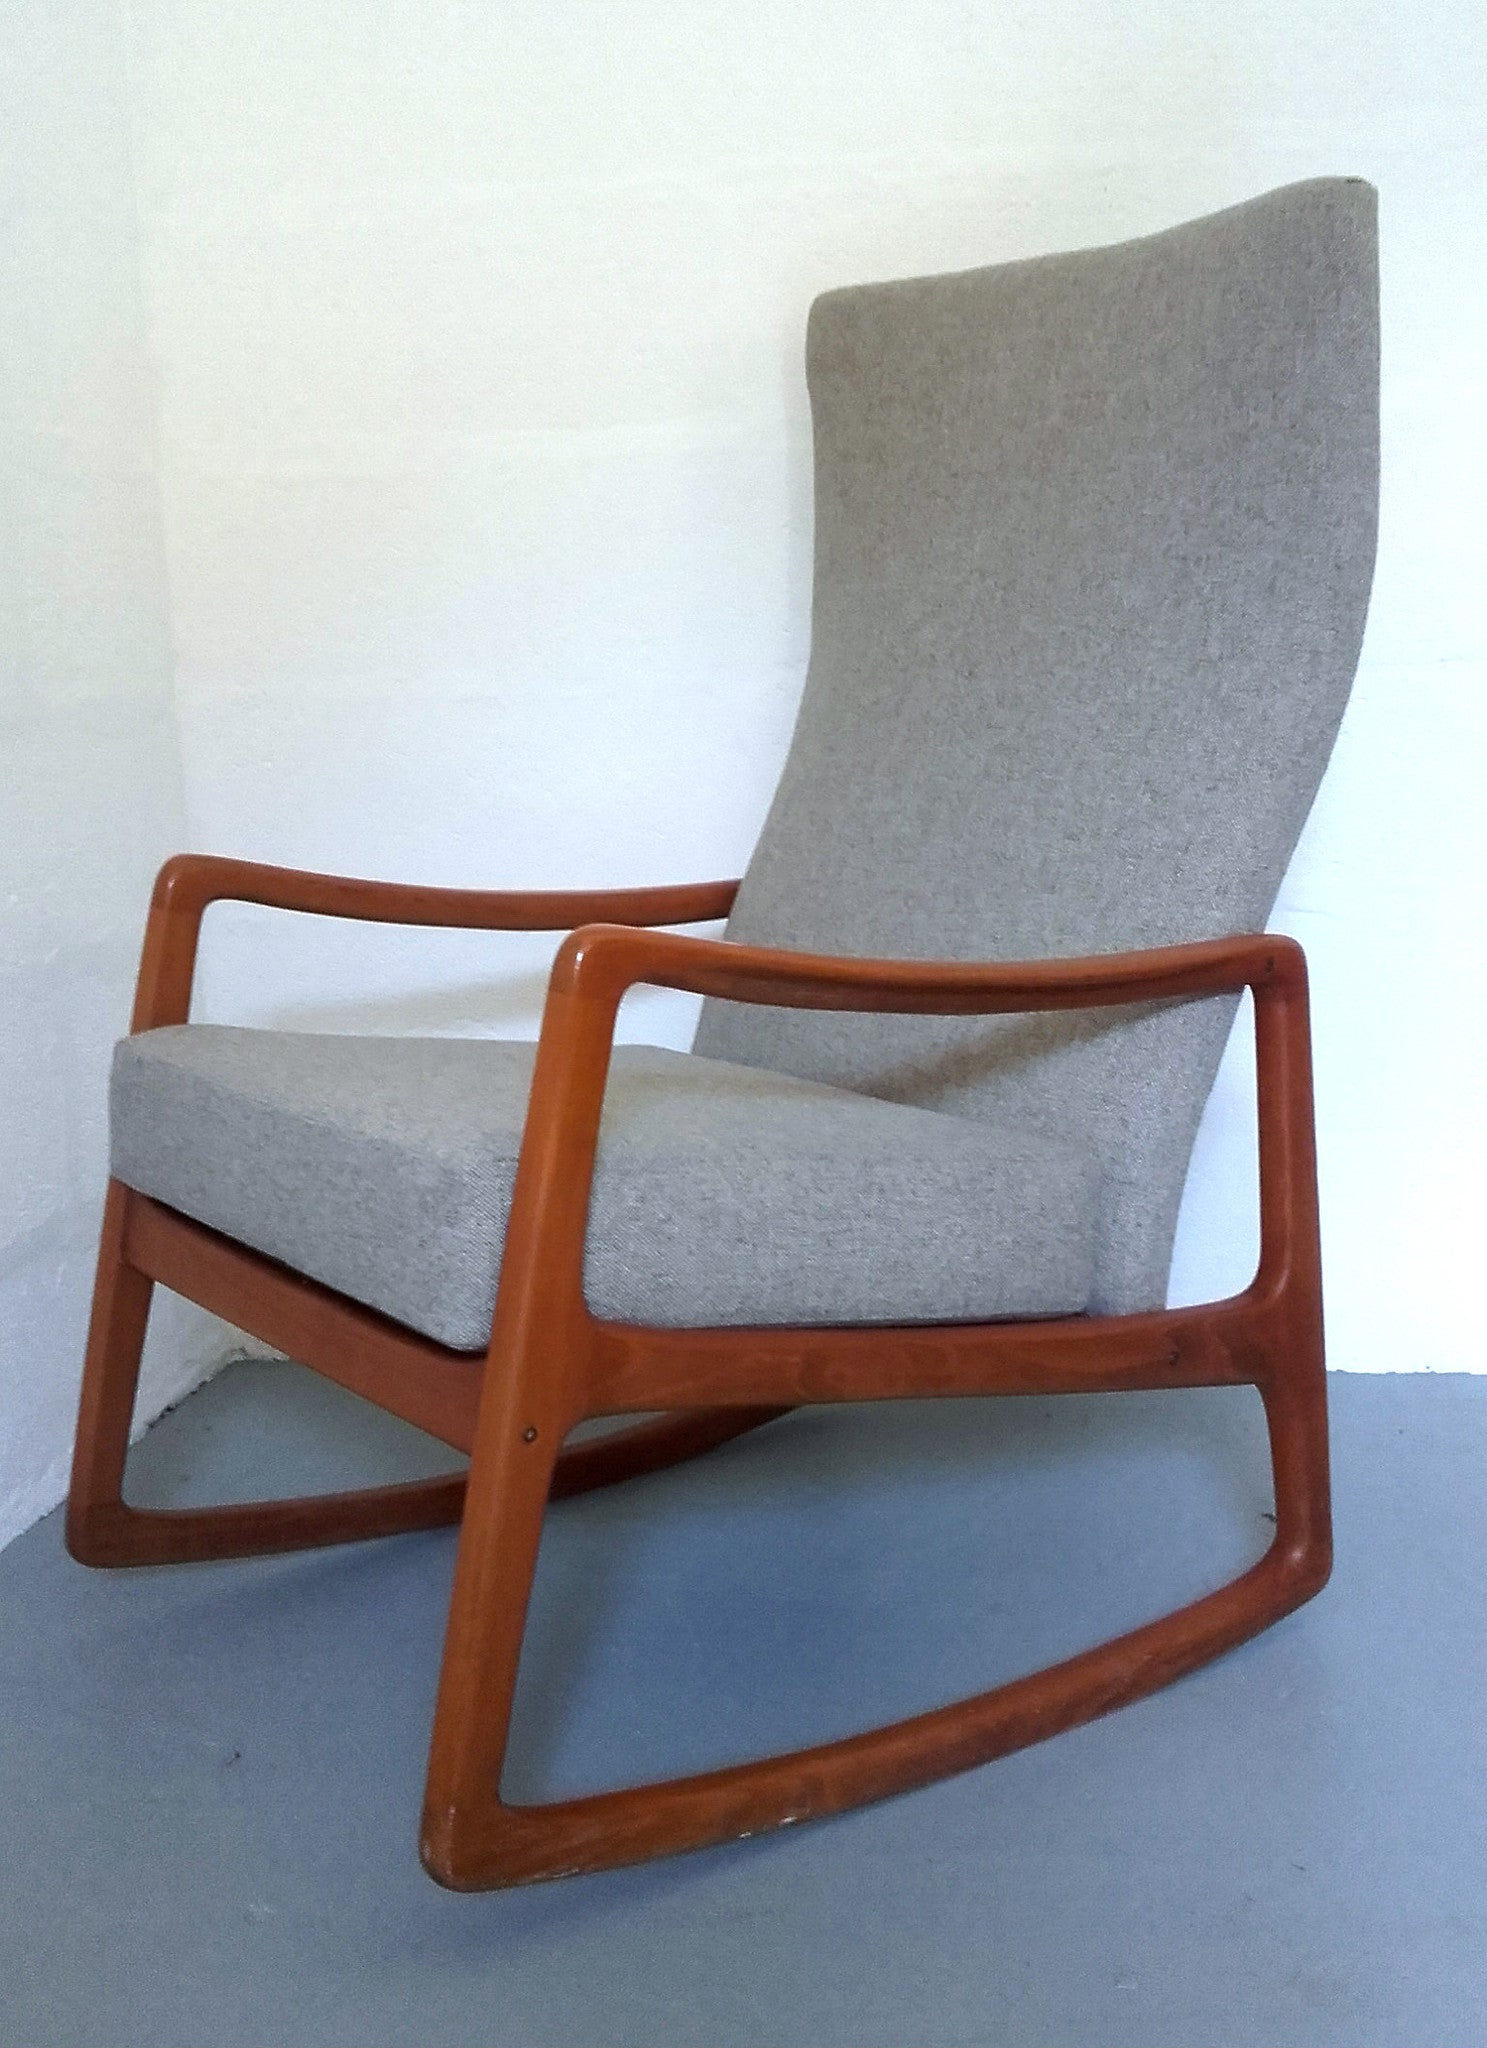 Danish Modern Rocking Chair Model #160 By Ole Wanscher For France U0026 Son